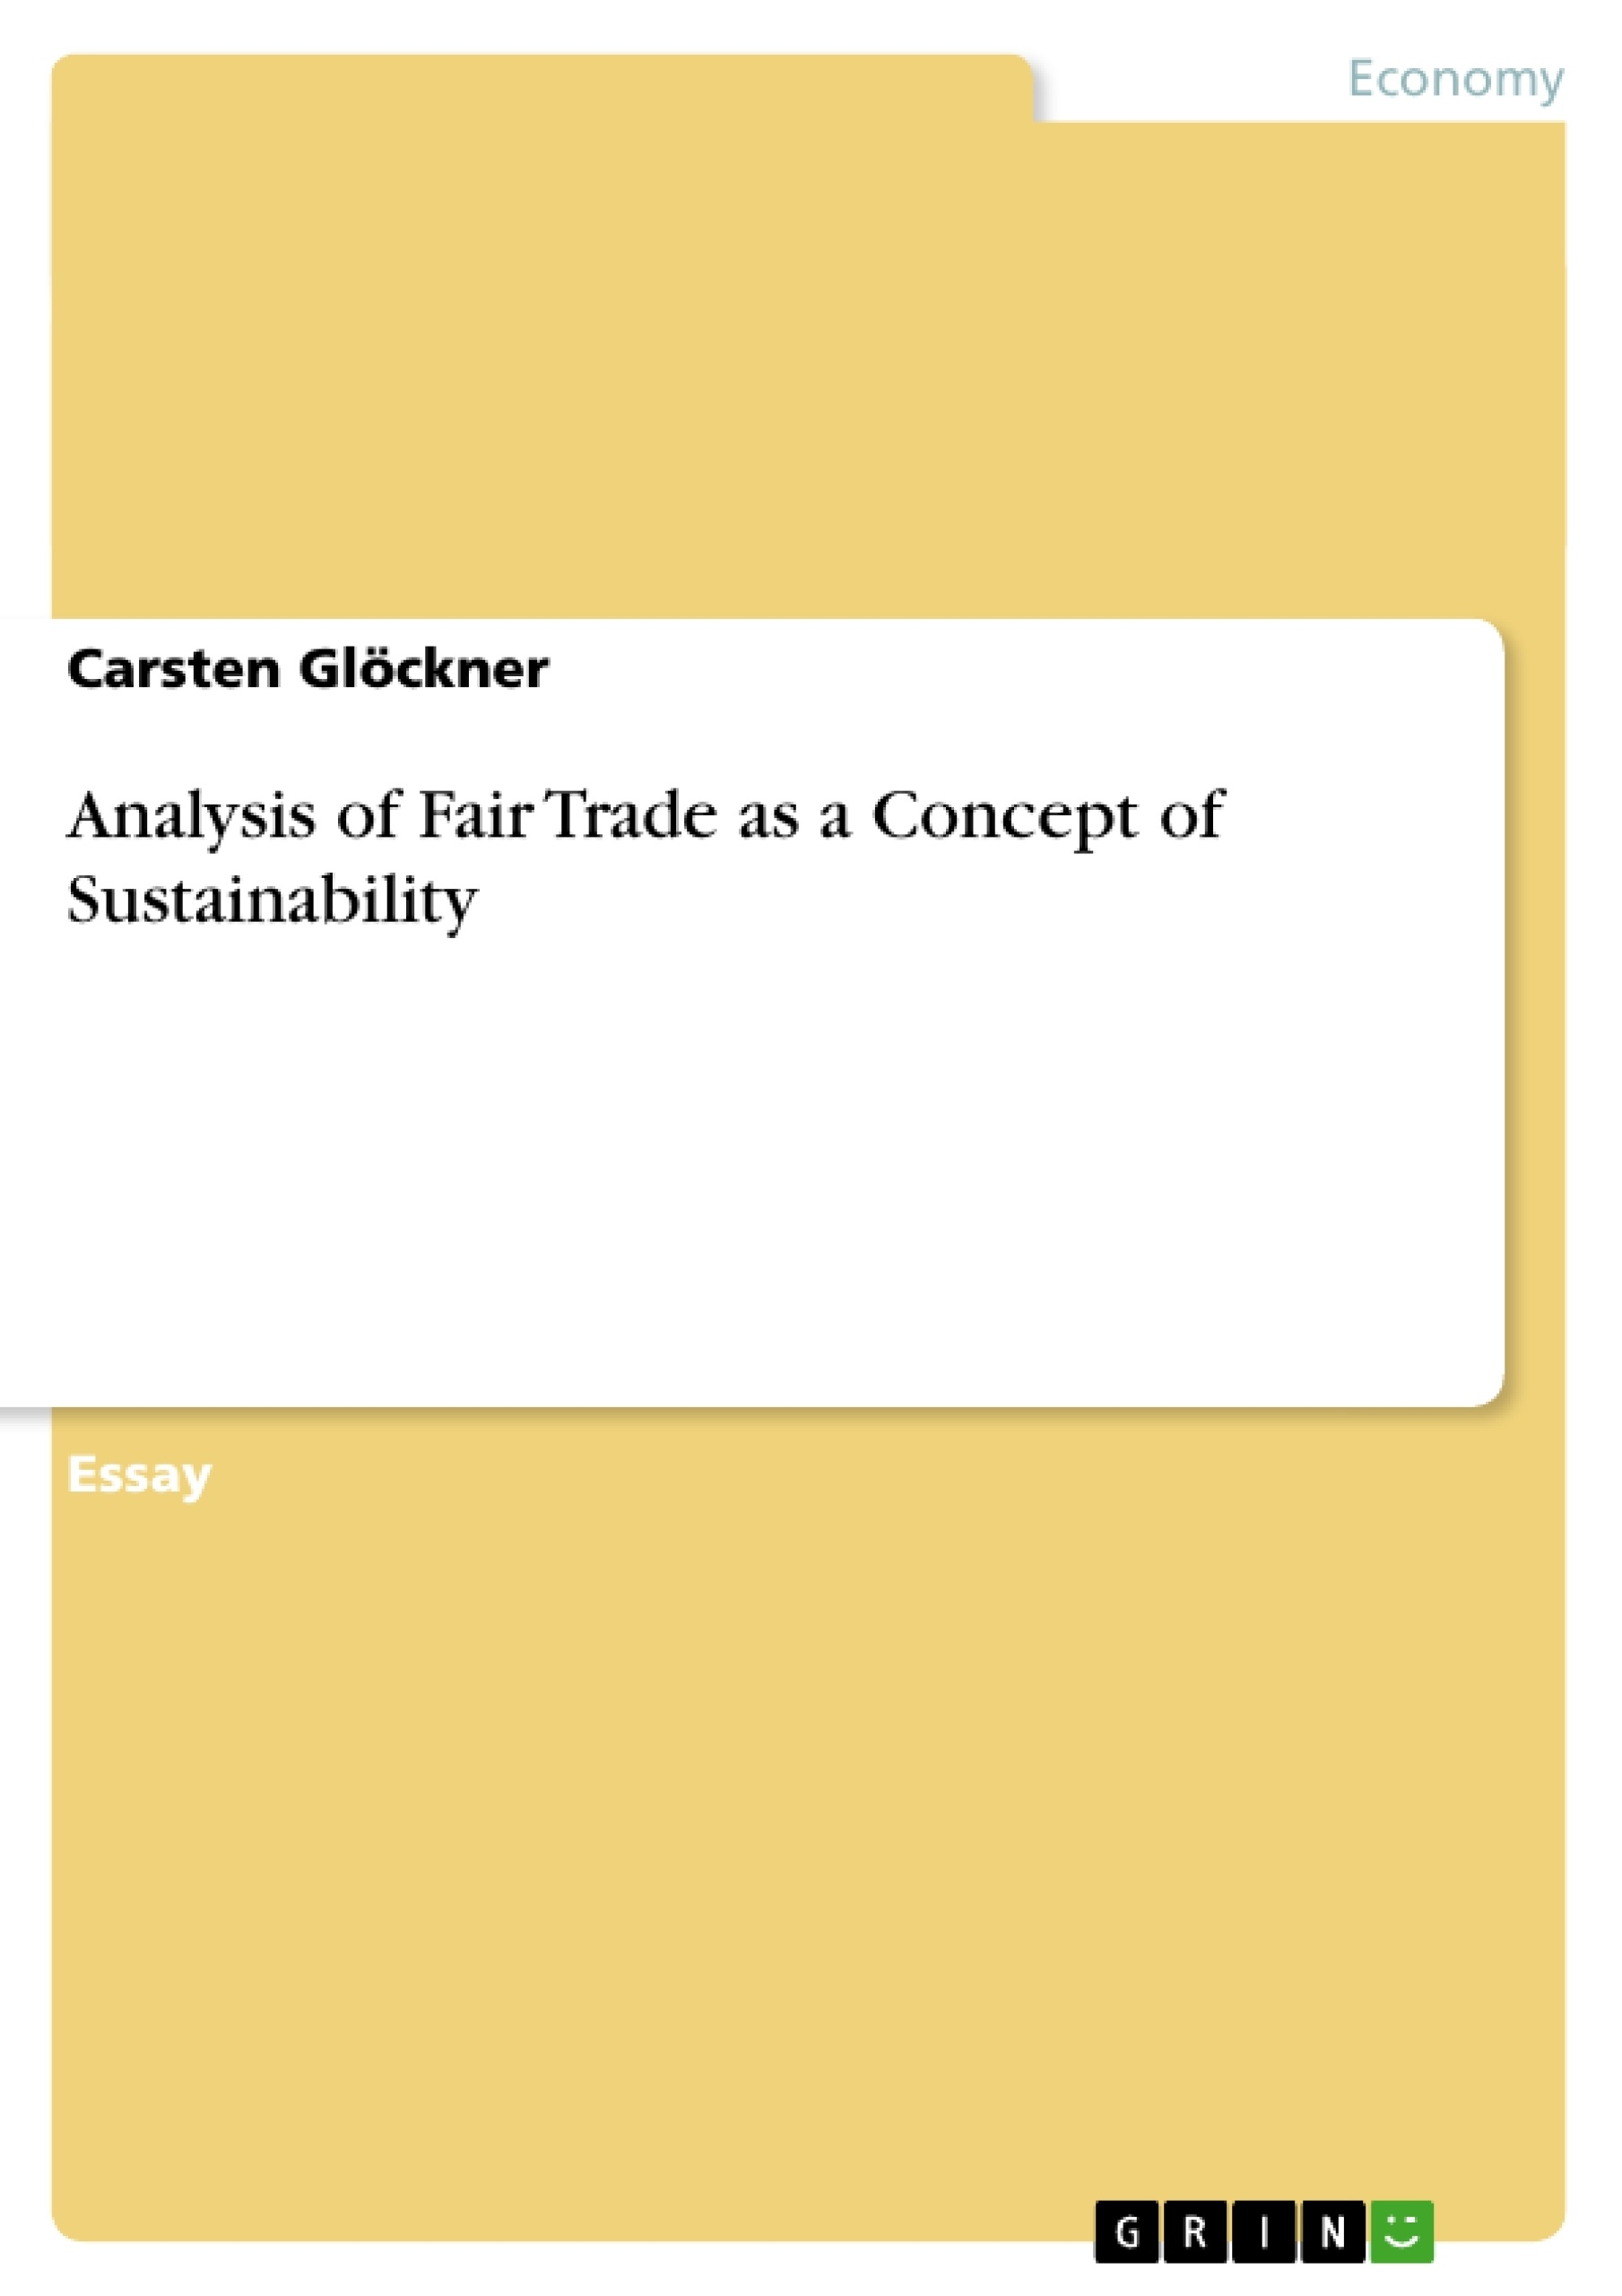 Title: Analysis of Fair Trade as a Concept of Sustainability